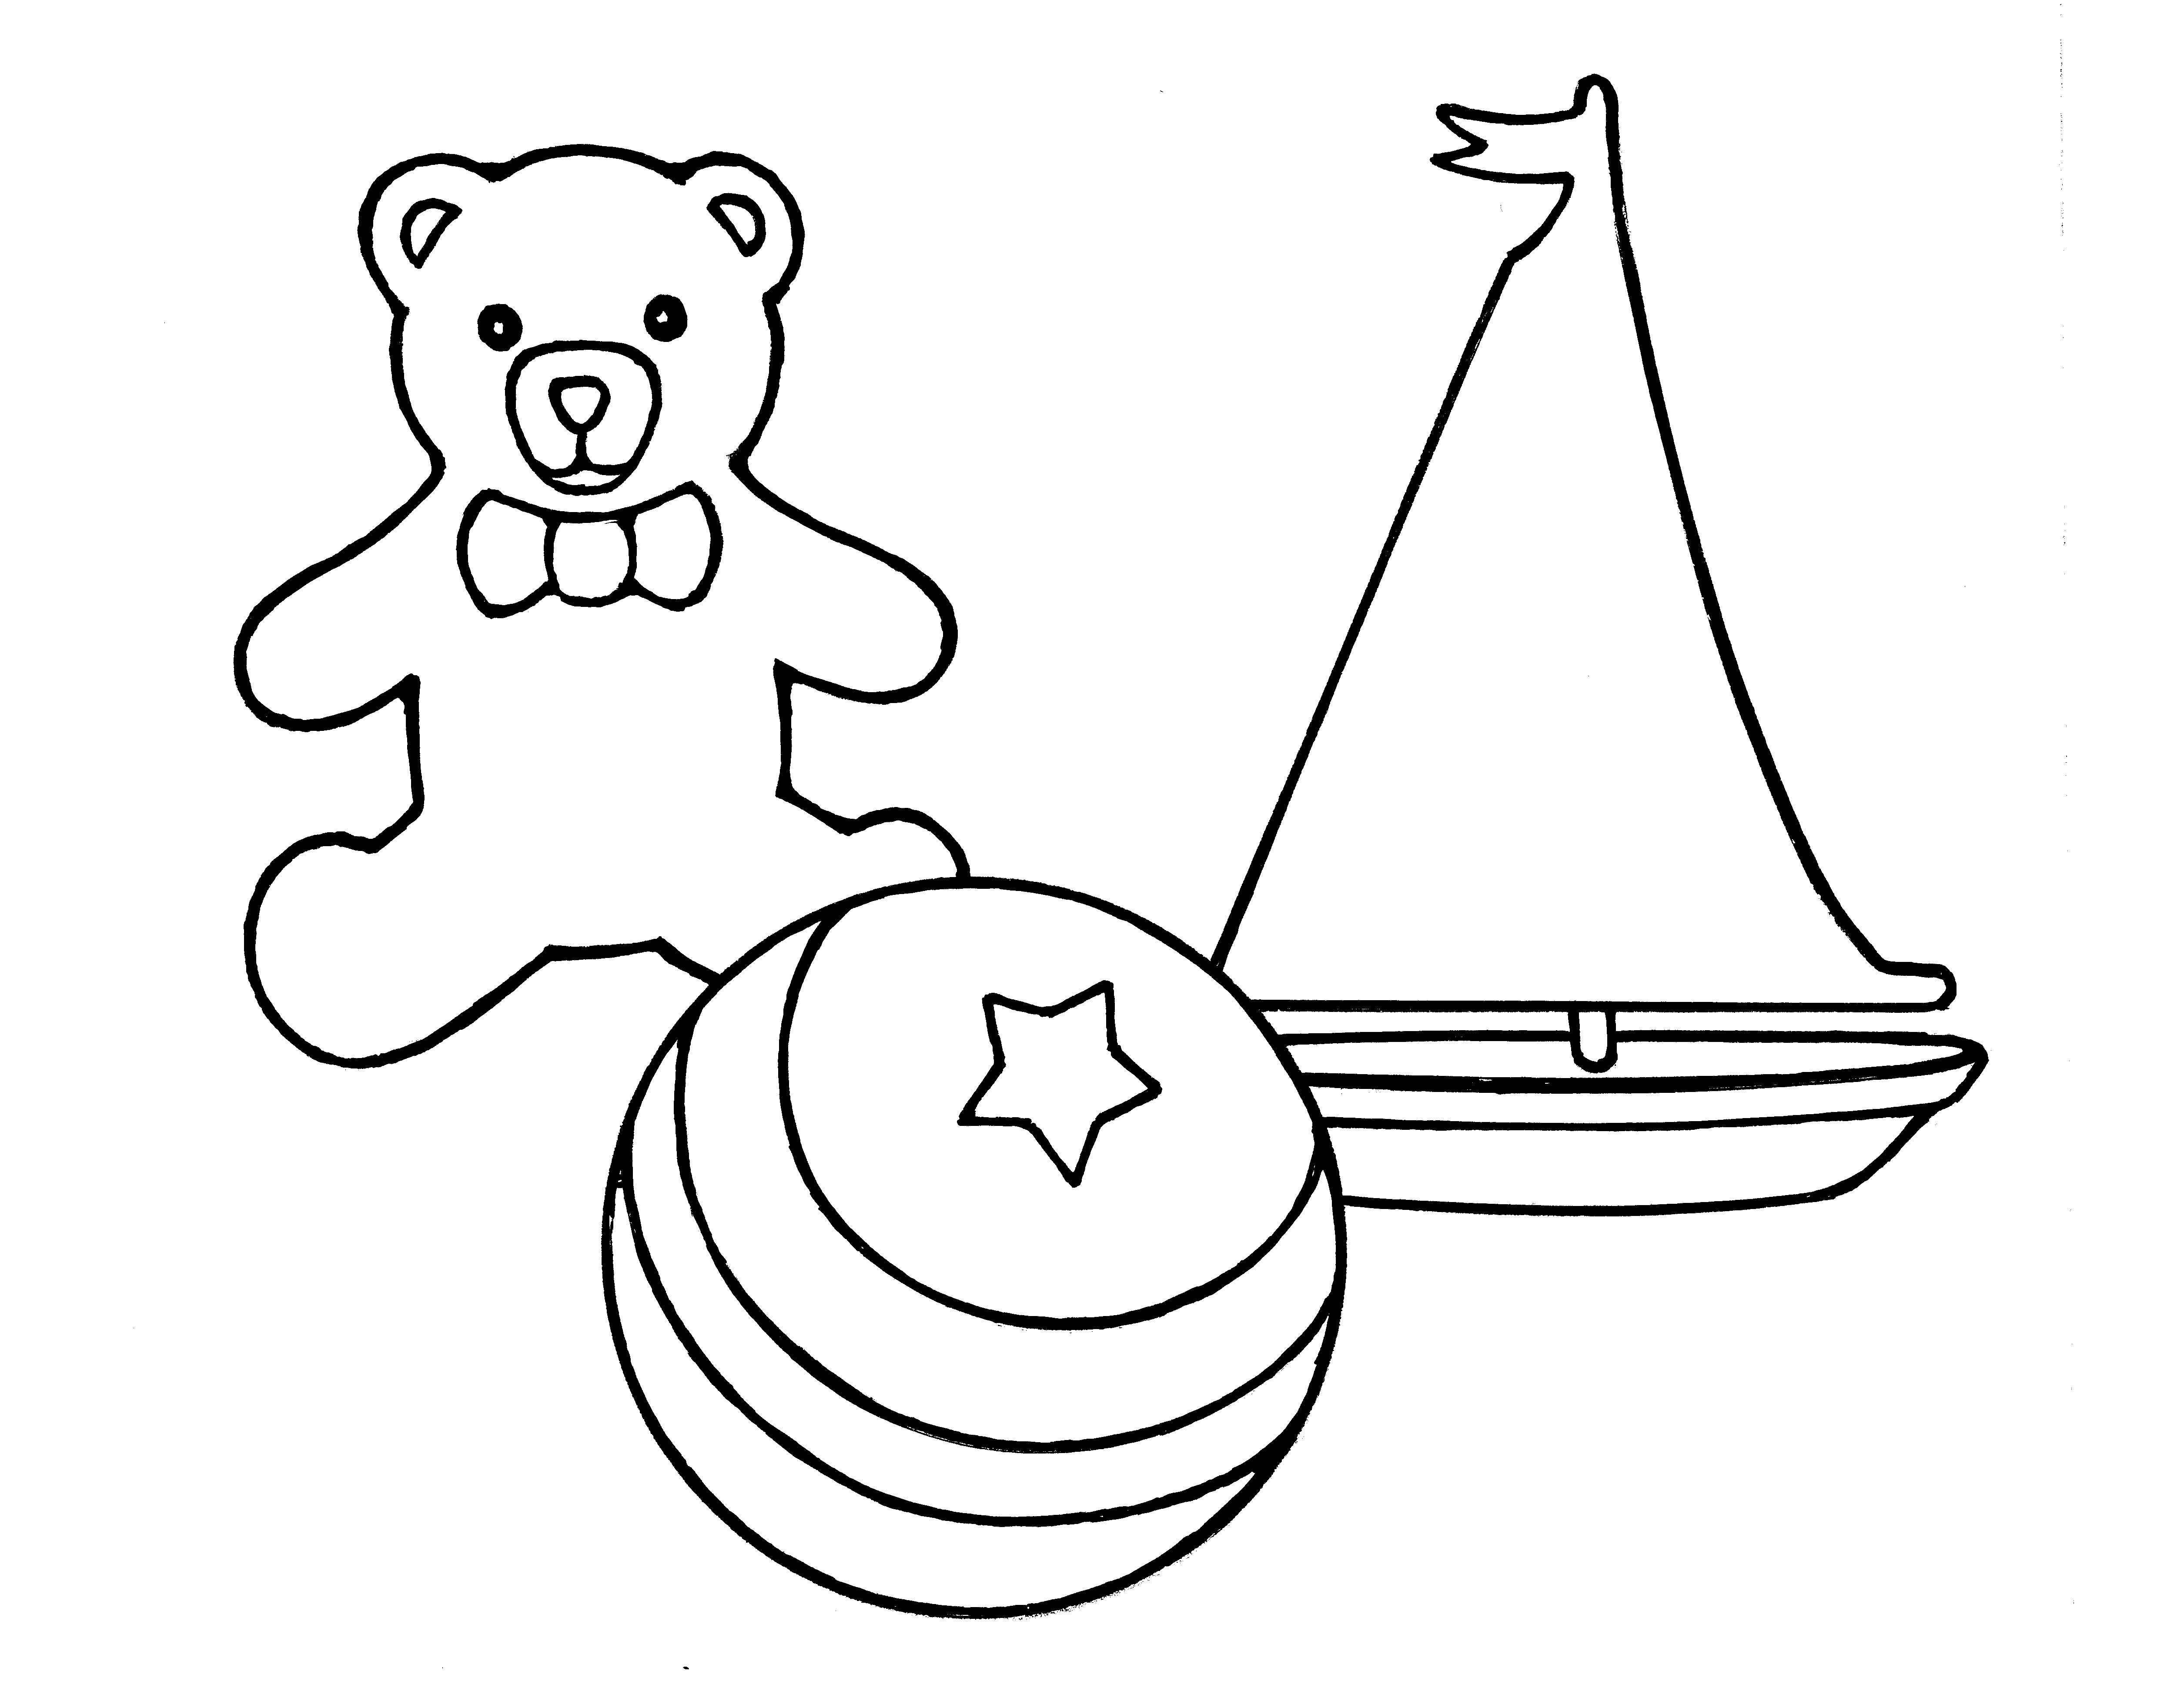 An illustration of toys from the nursery manual Behold Your Little Ones (2008), page 75.